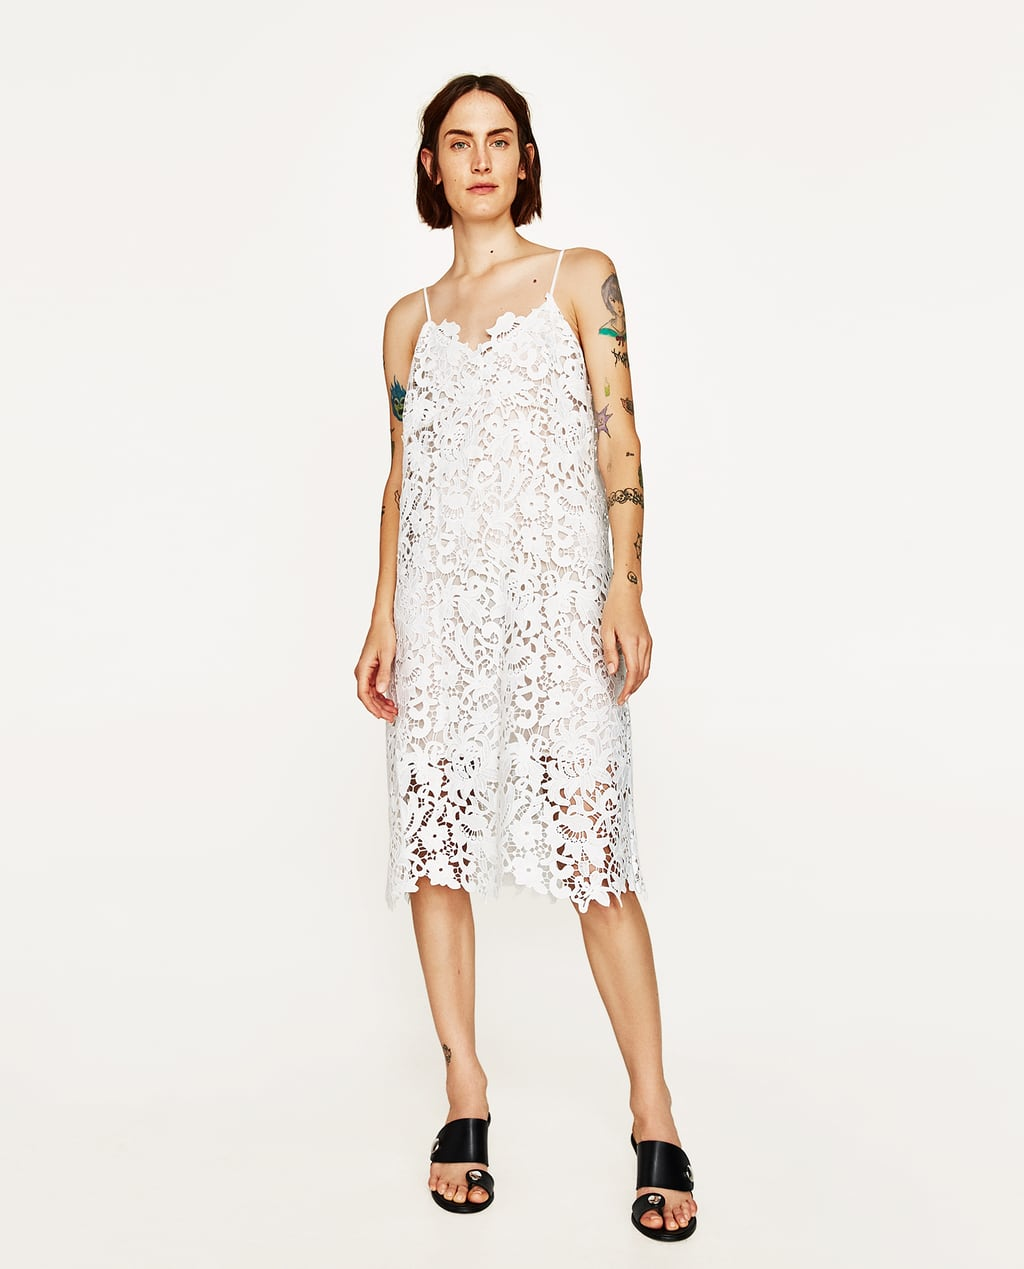 White dress at zara - Image 1 Of Strappy Lace Dress From Zara